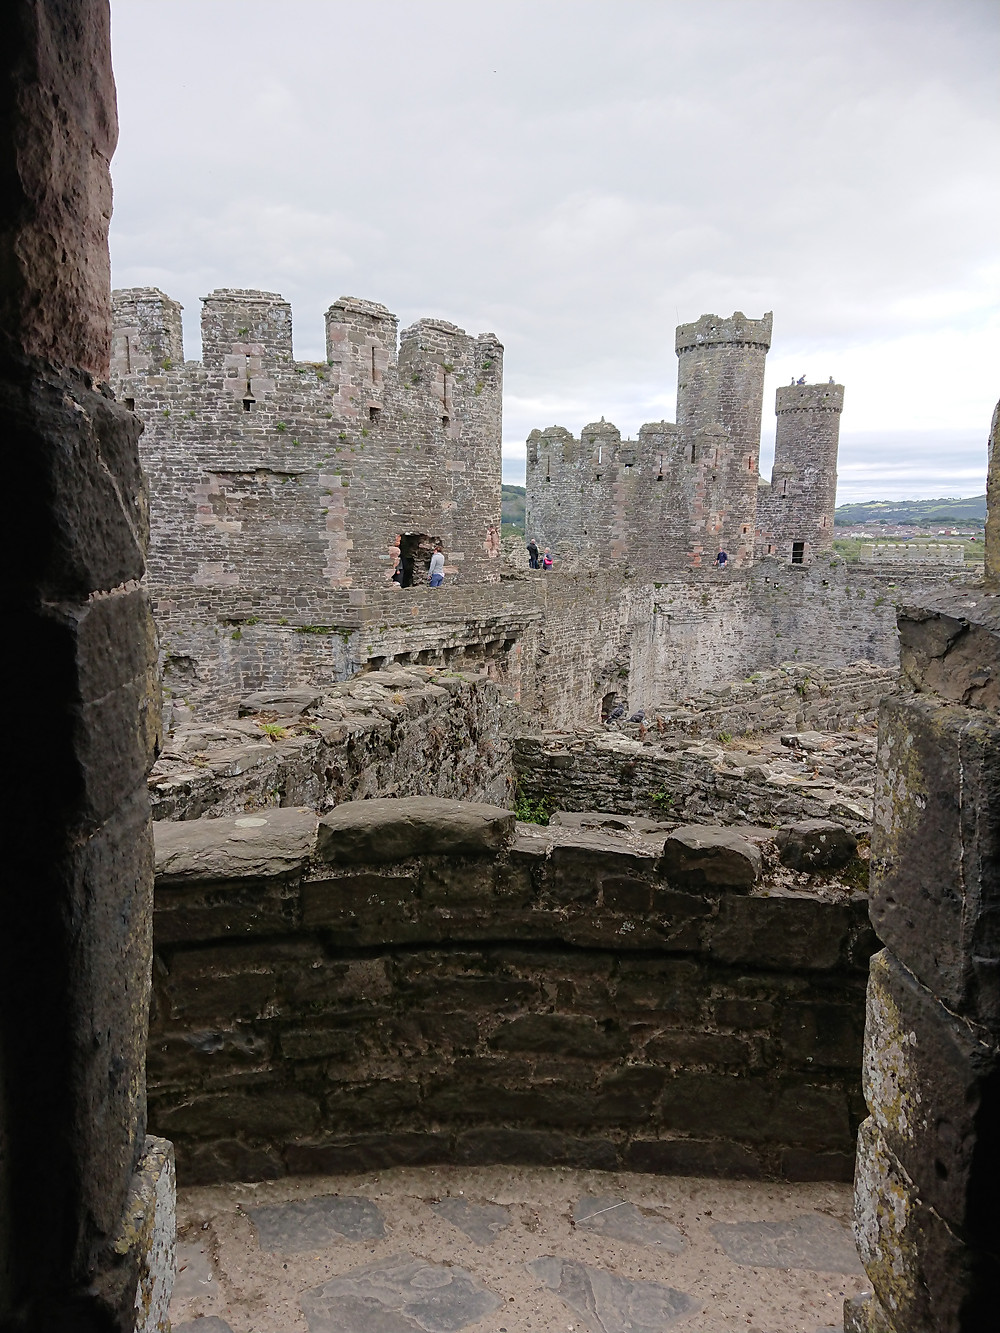 Conwy castle, inside a medieval castle built by Edward I king of England